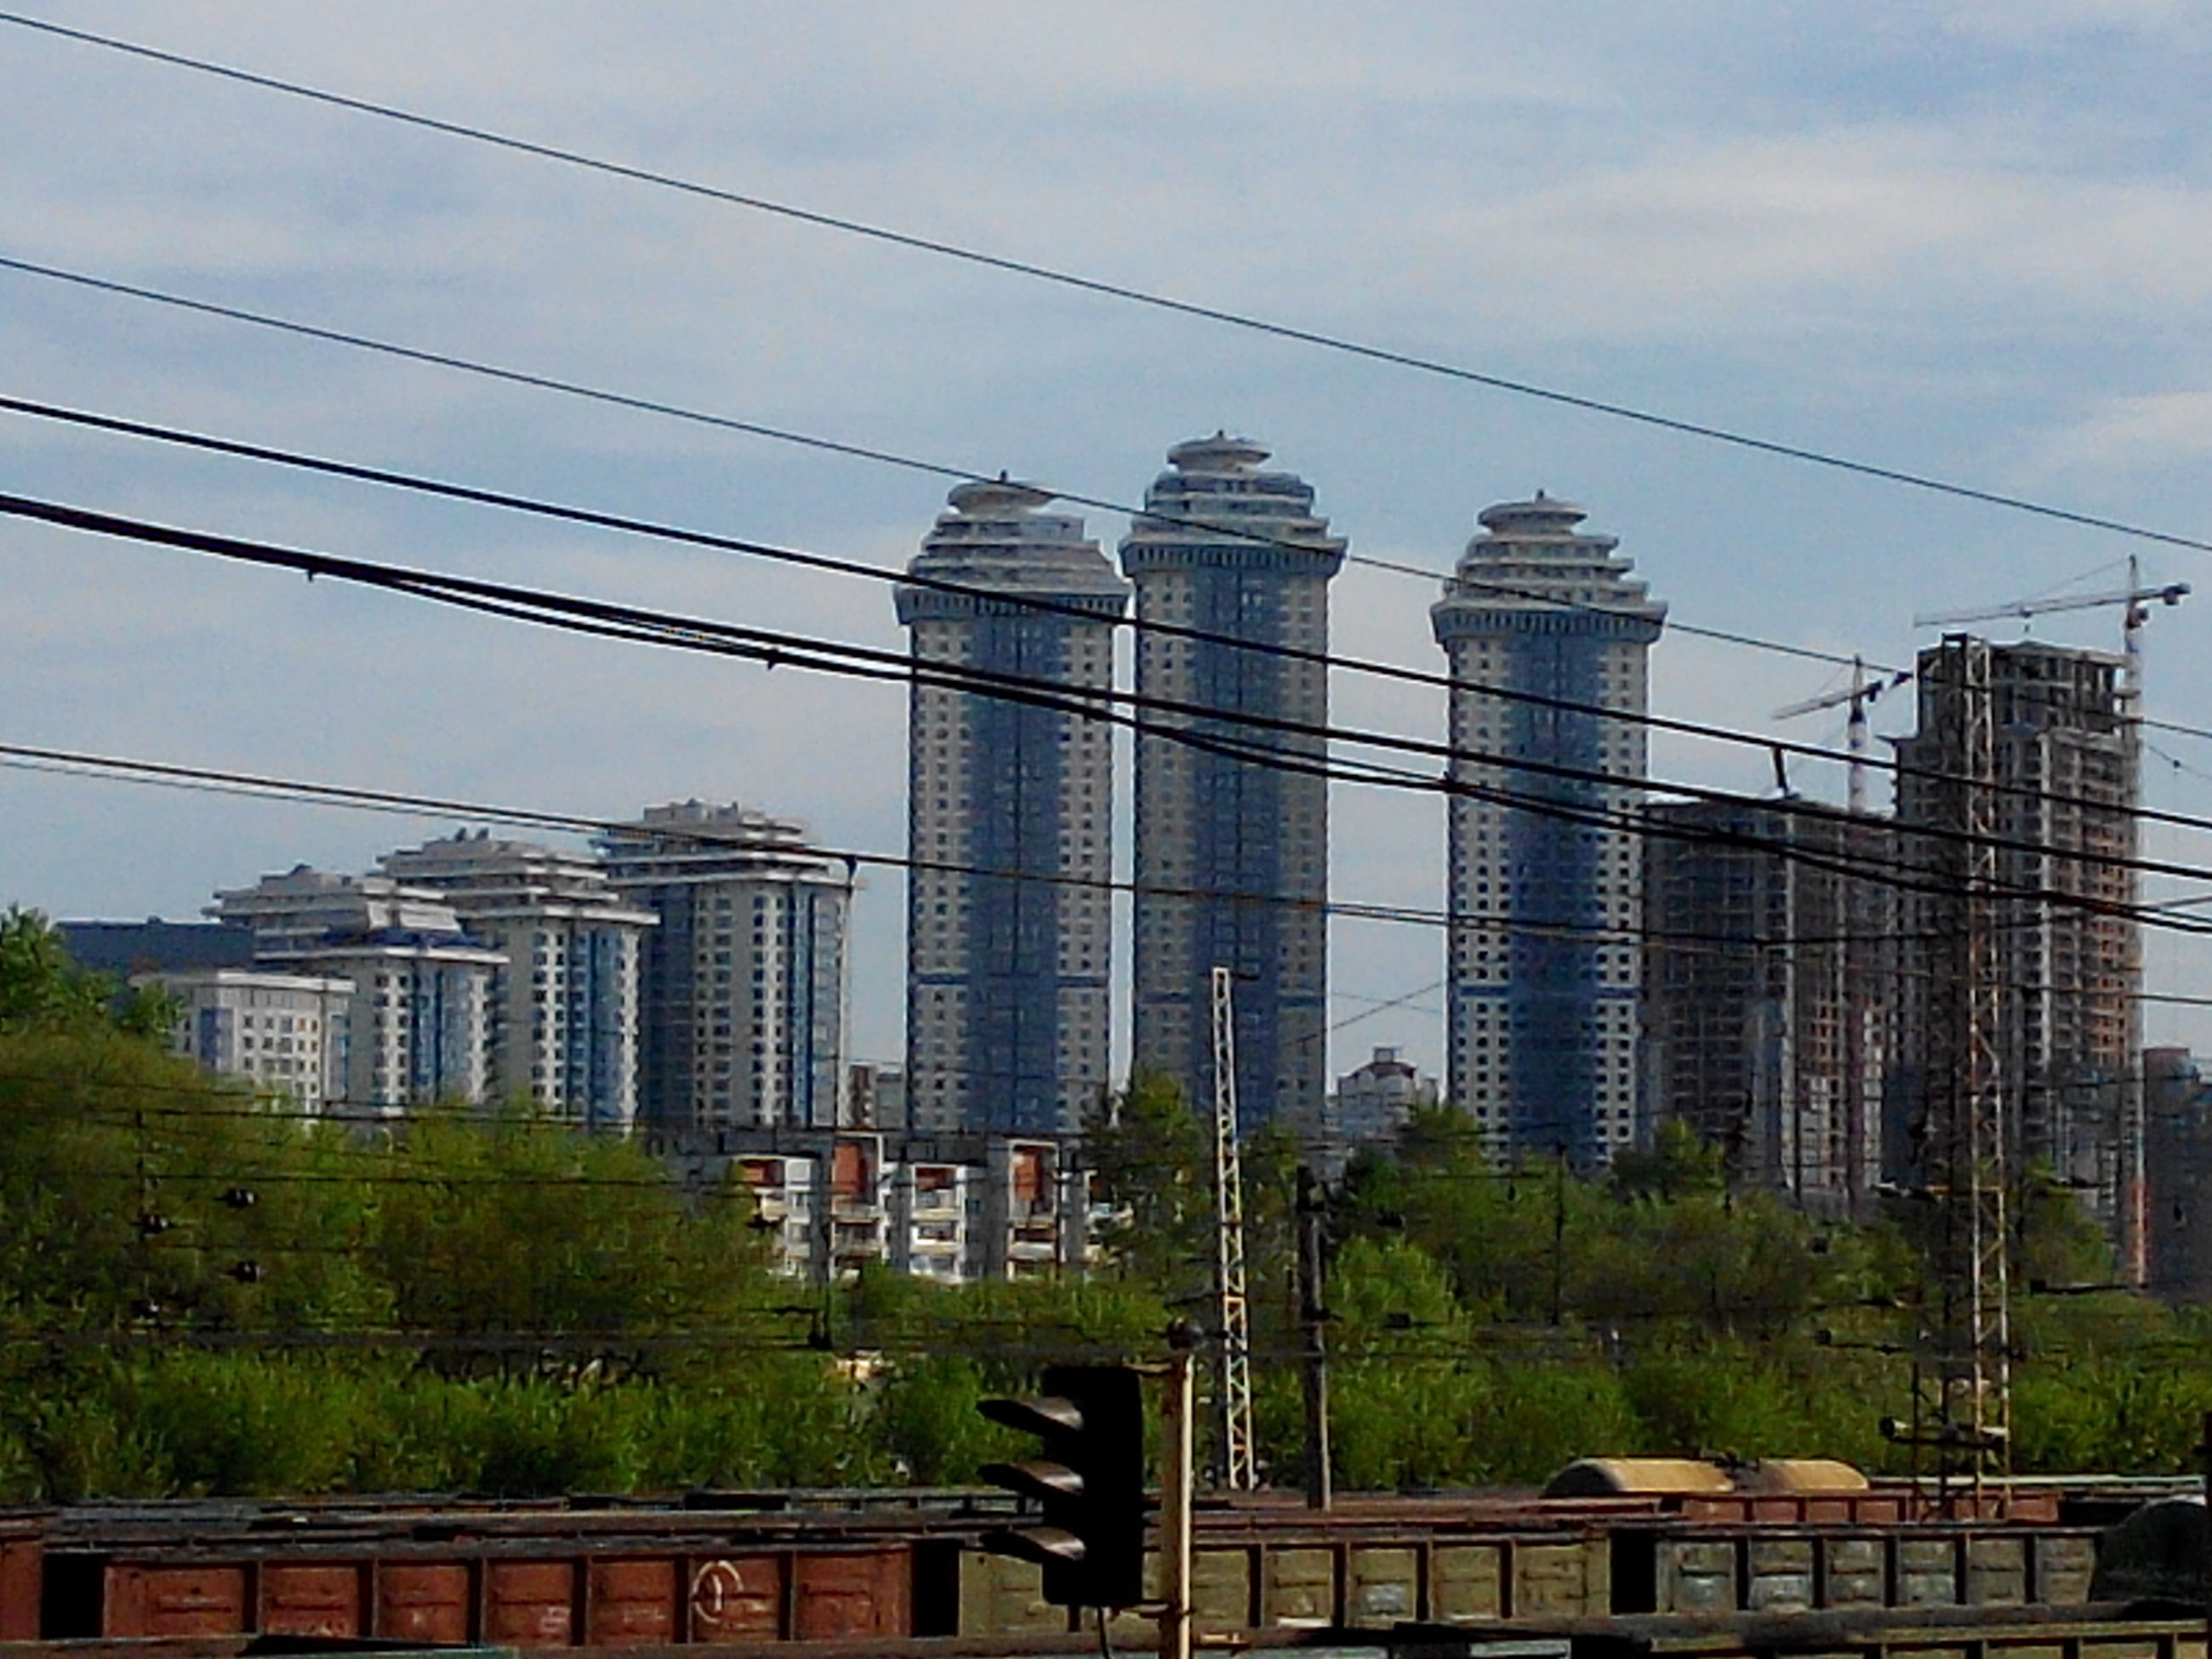 building exterior, architecture, built structure, city, skyscraper, office building, modern, sky, tower, tall - high, glass - material, tree, building, city life, day, low angle view, growth, cloud - sky, cityscape, no people